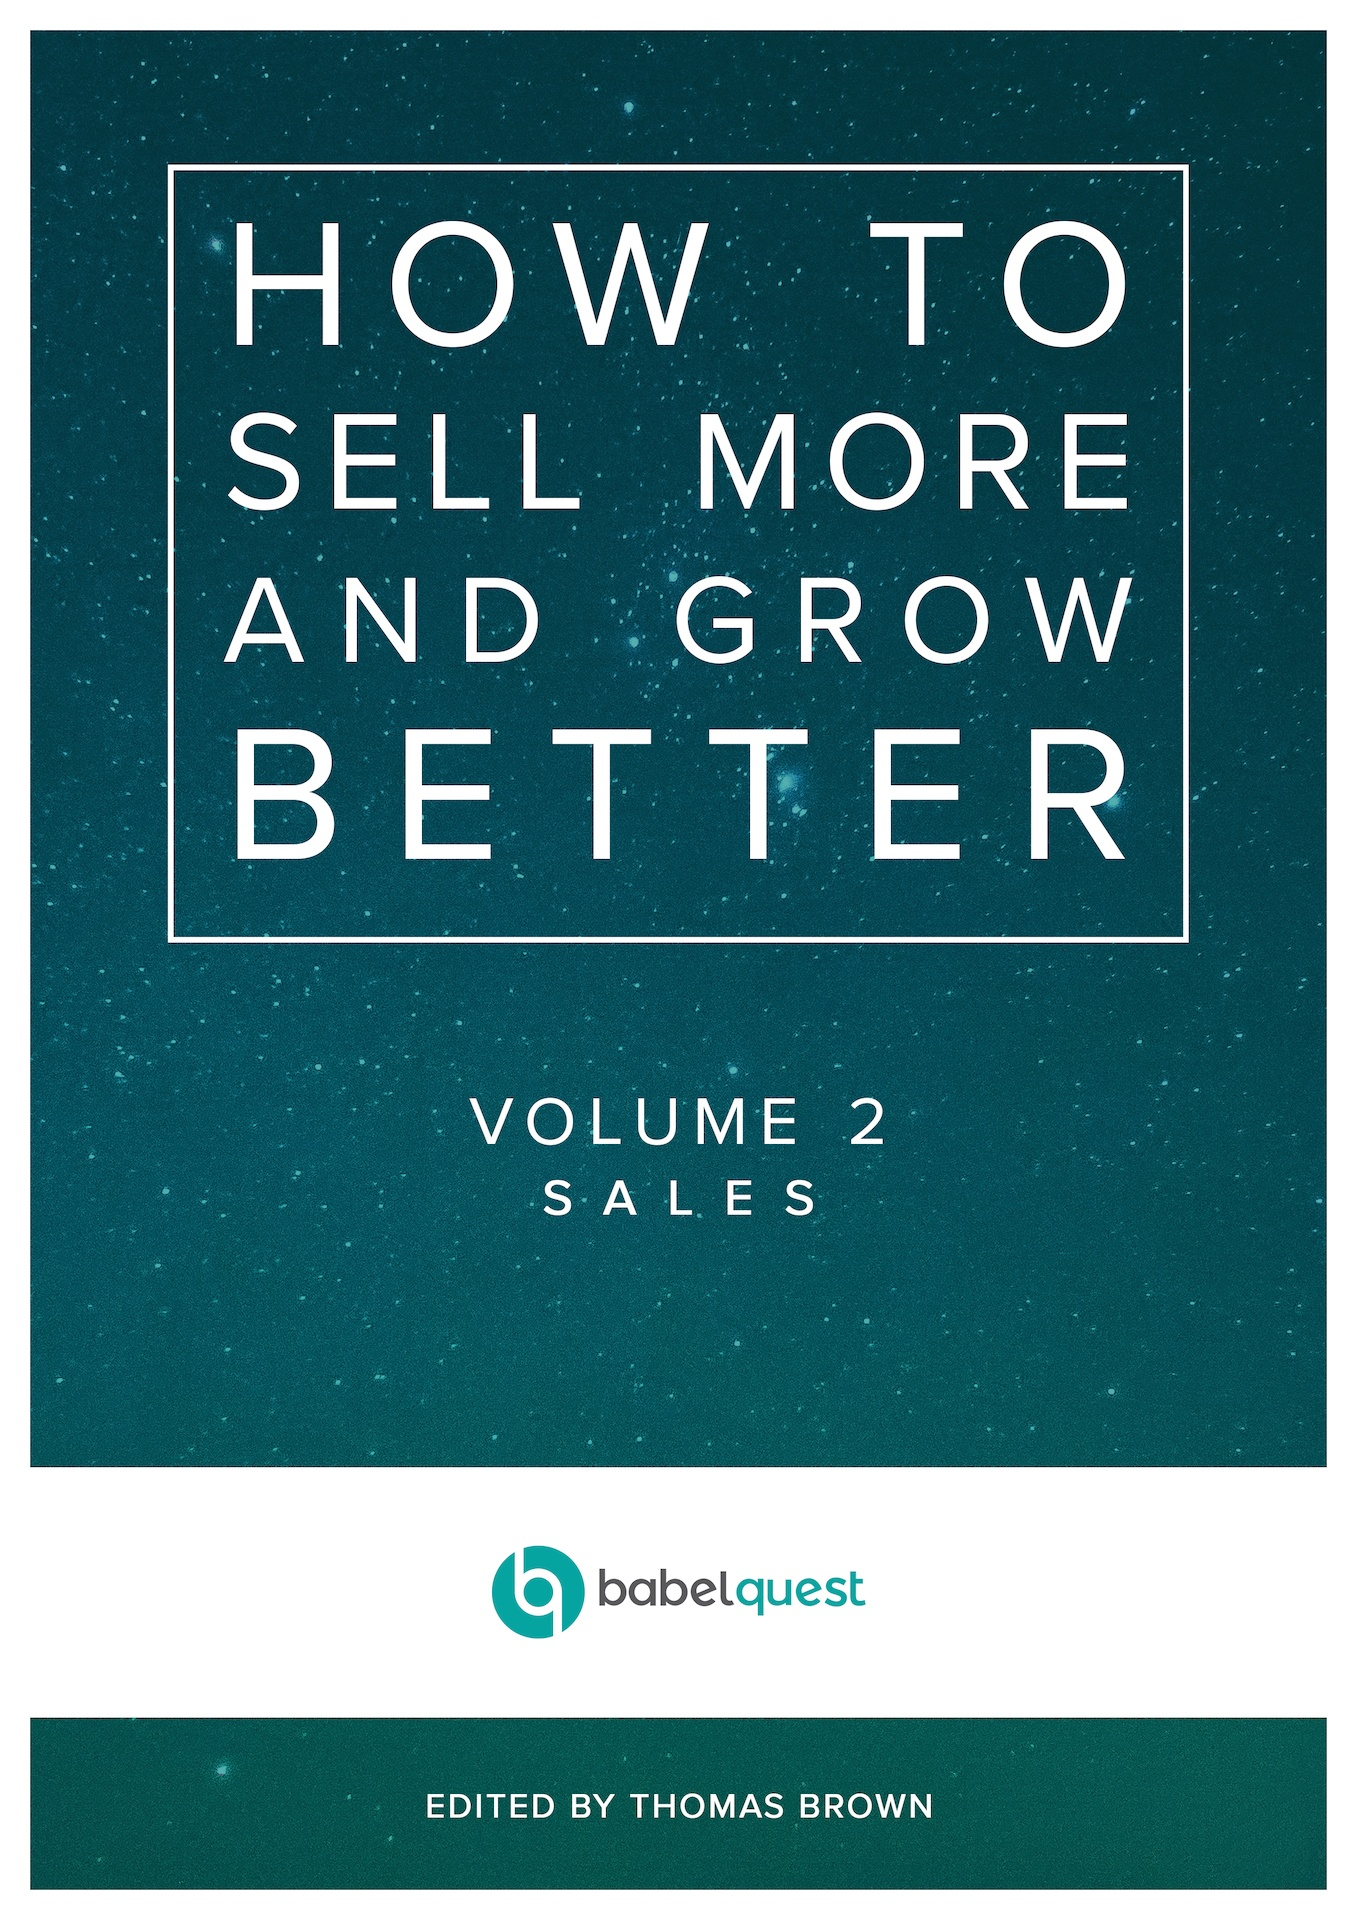 Sales ebook cover